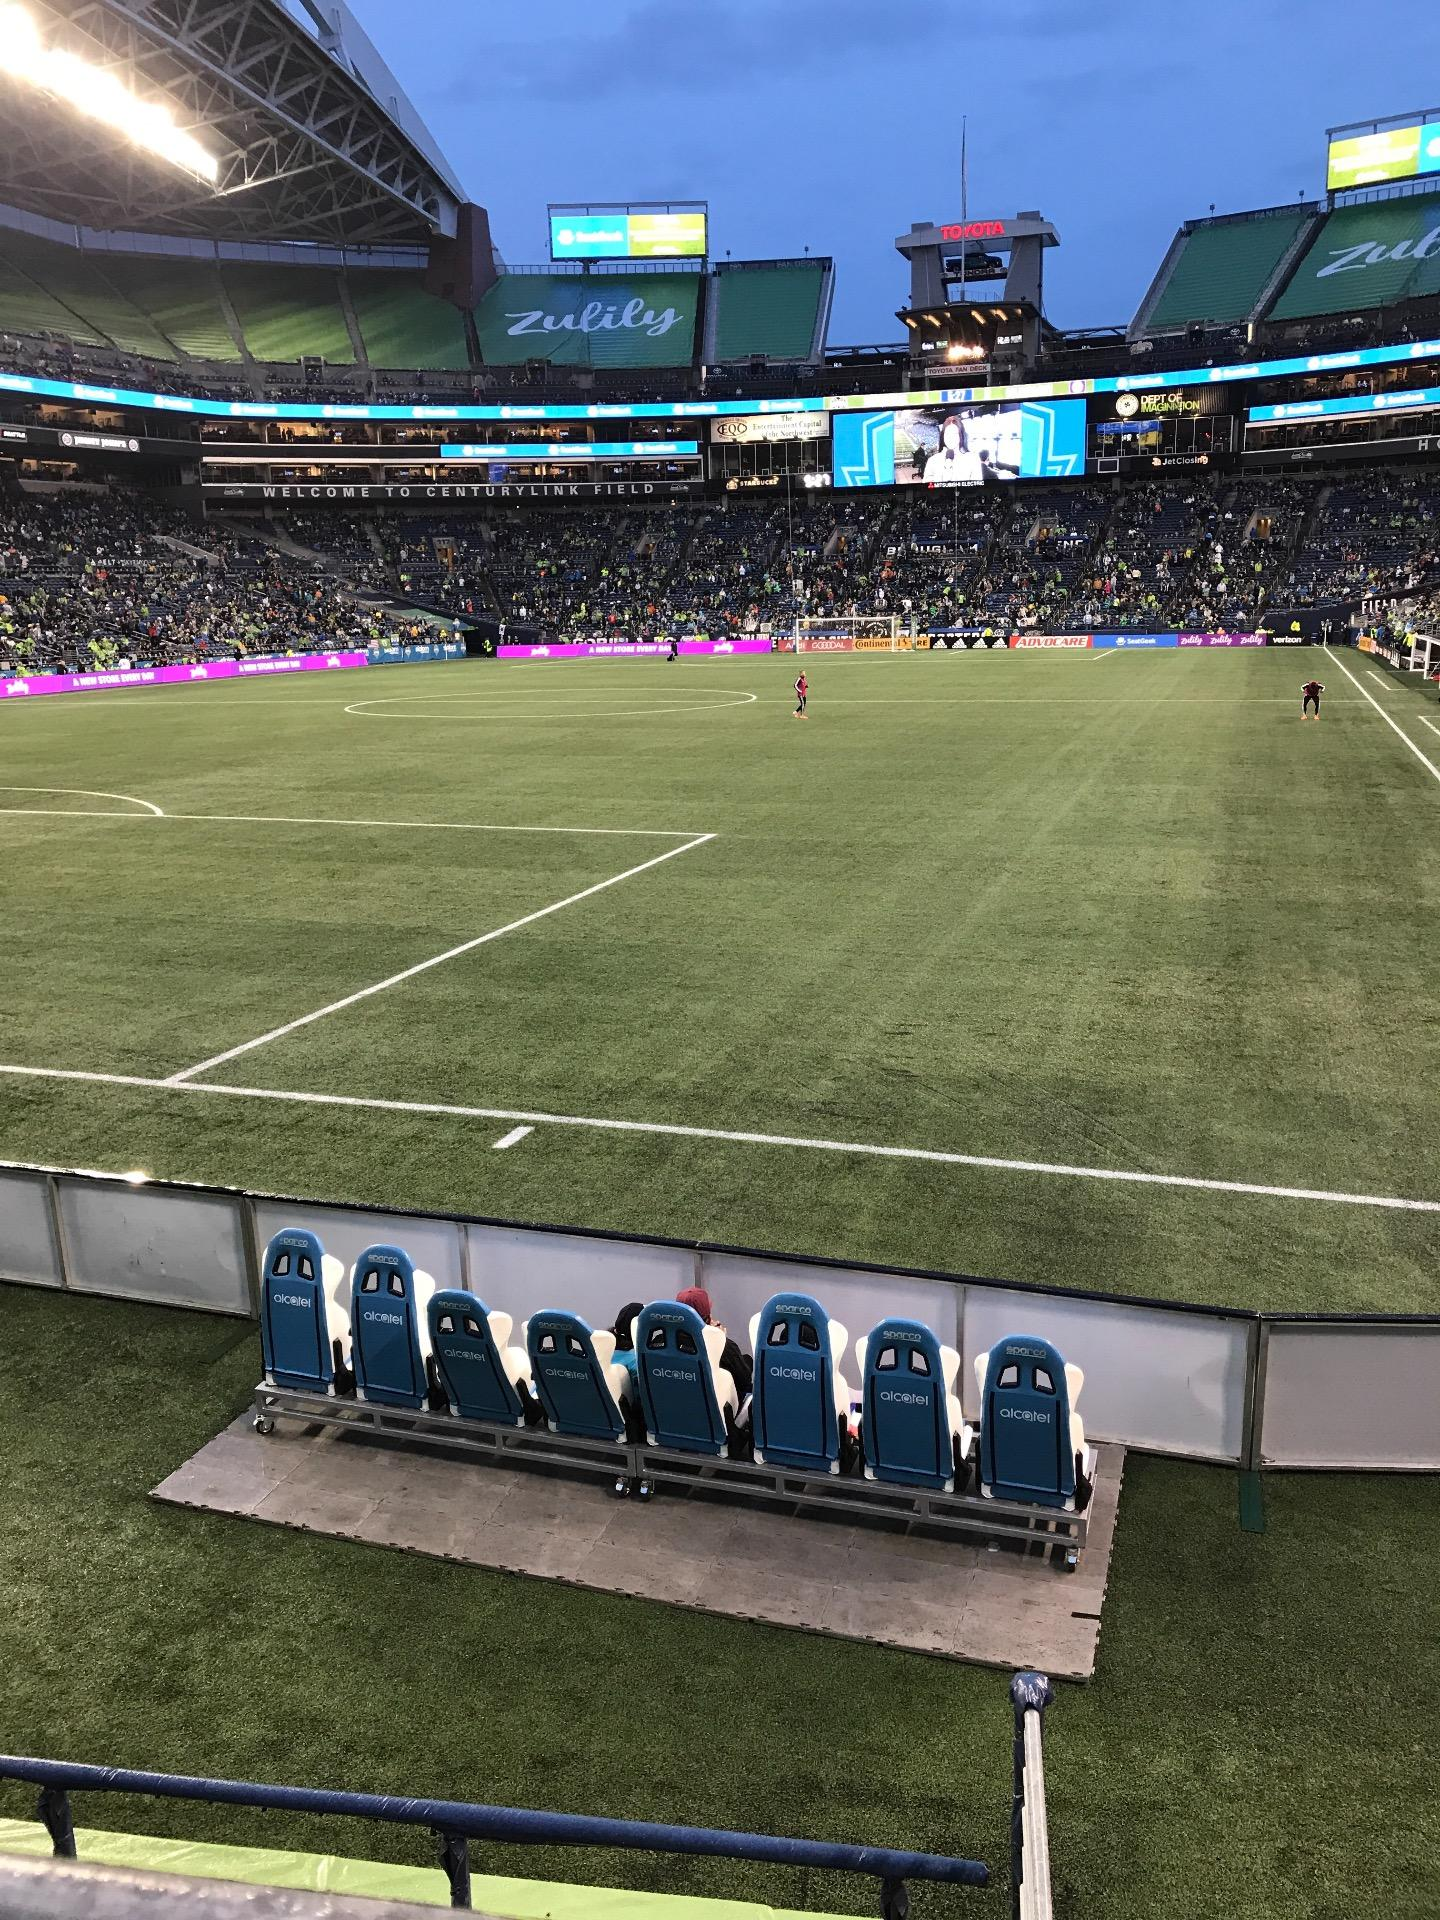 CenturyLink Field, section 145, row A, seat 3 - Seattle Sounders FC vs